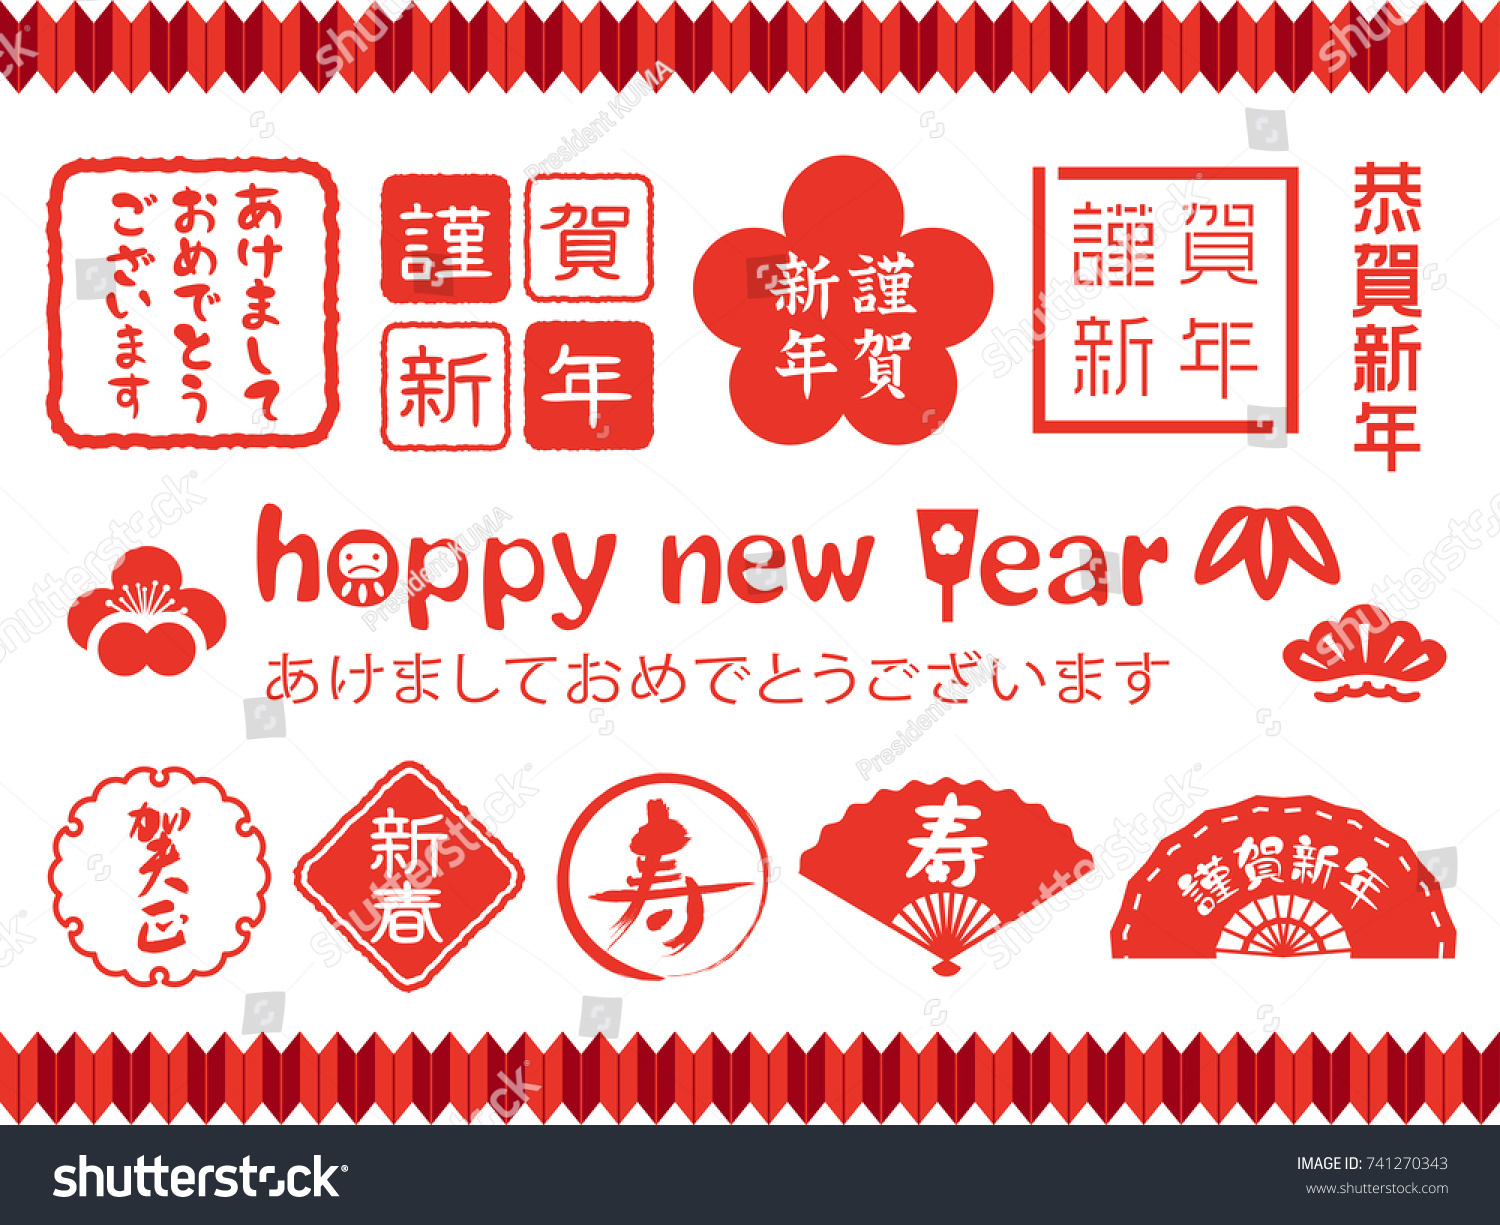 stamp and logo set for new years cards in japan in japanese it is